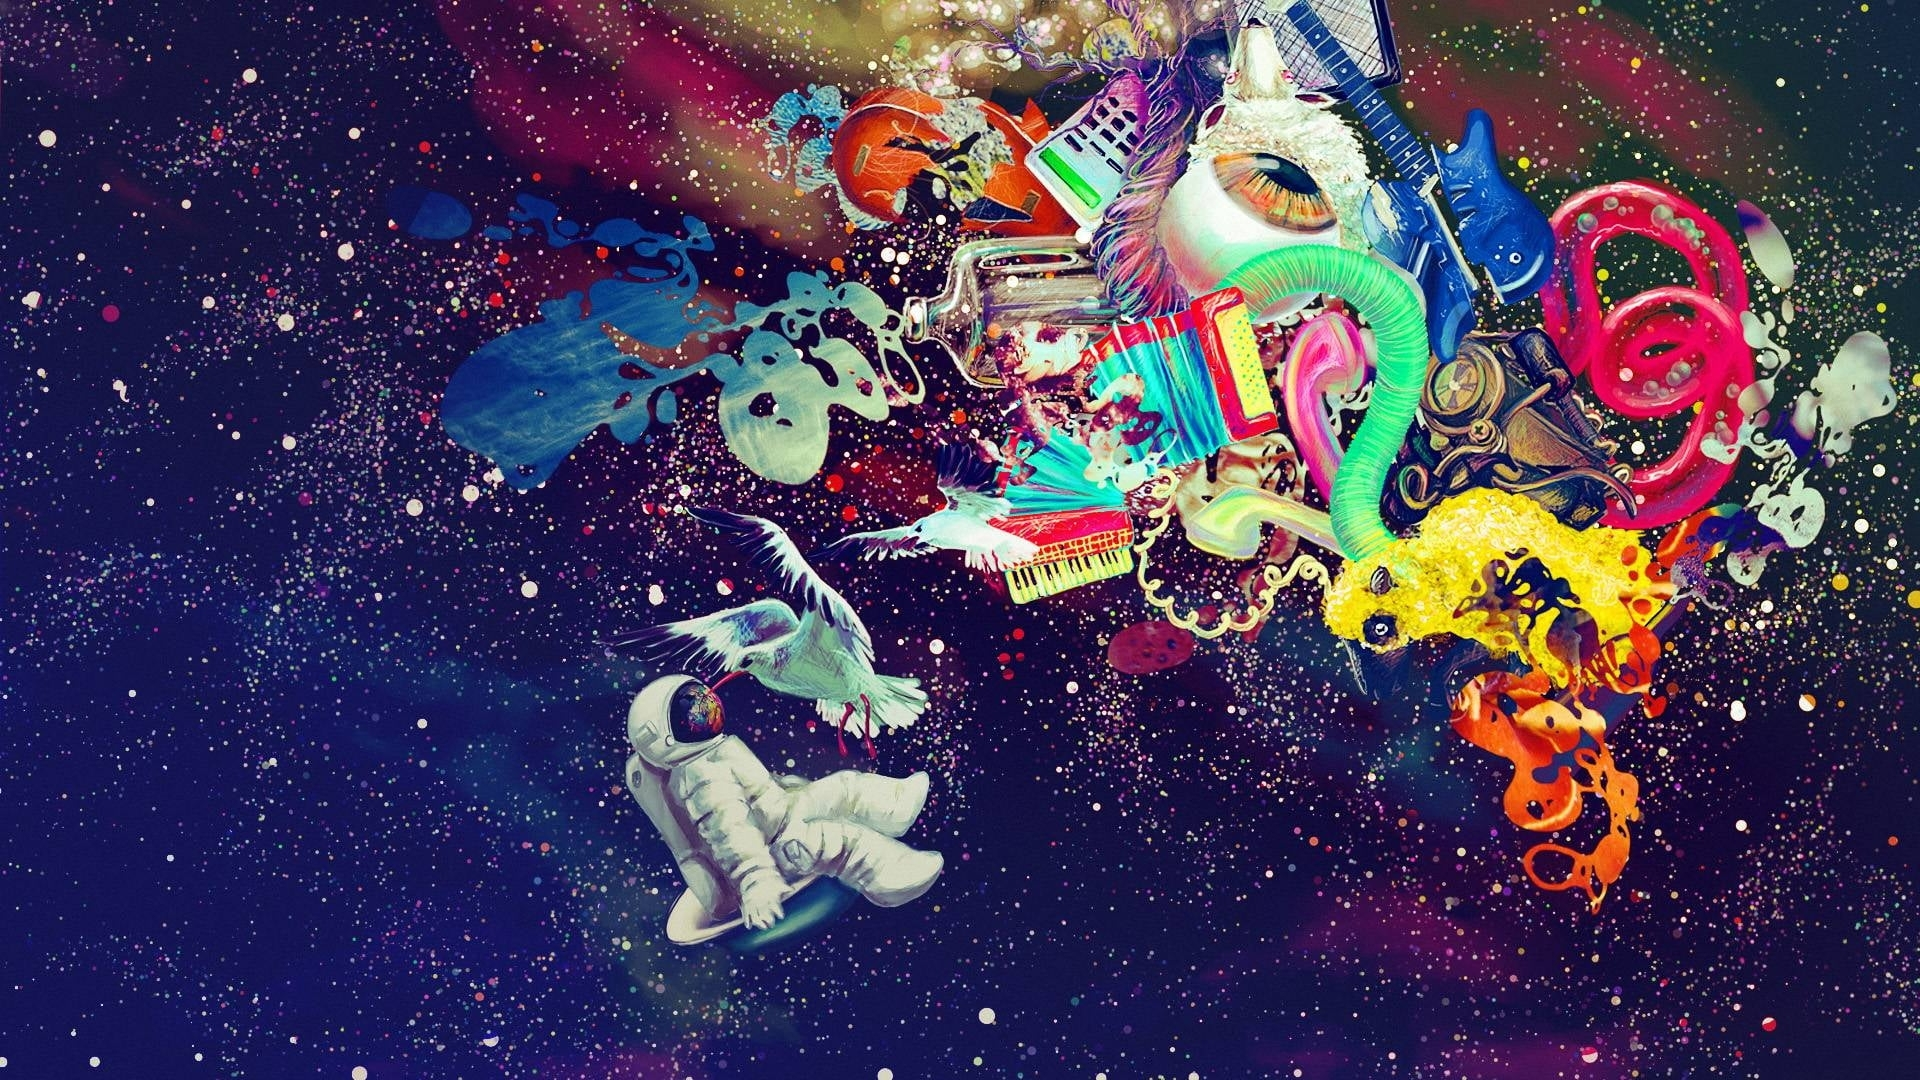 space, colorful, abstract, psychedelic hd wallpaper   wallpaper flare